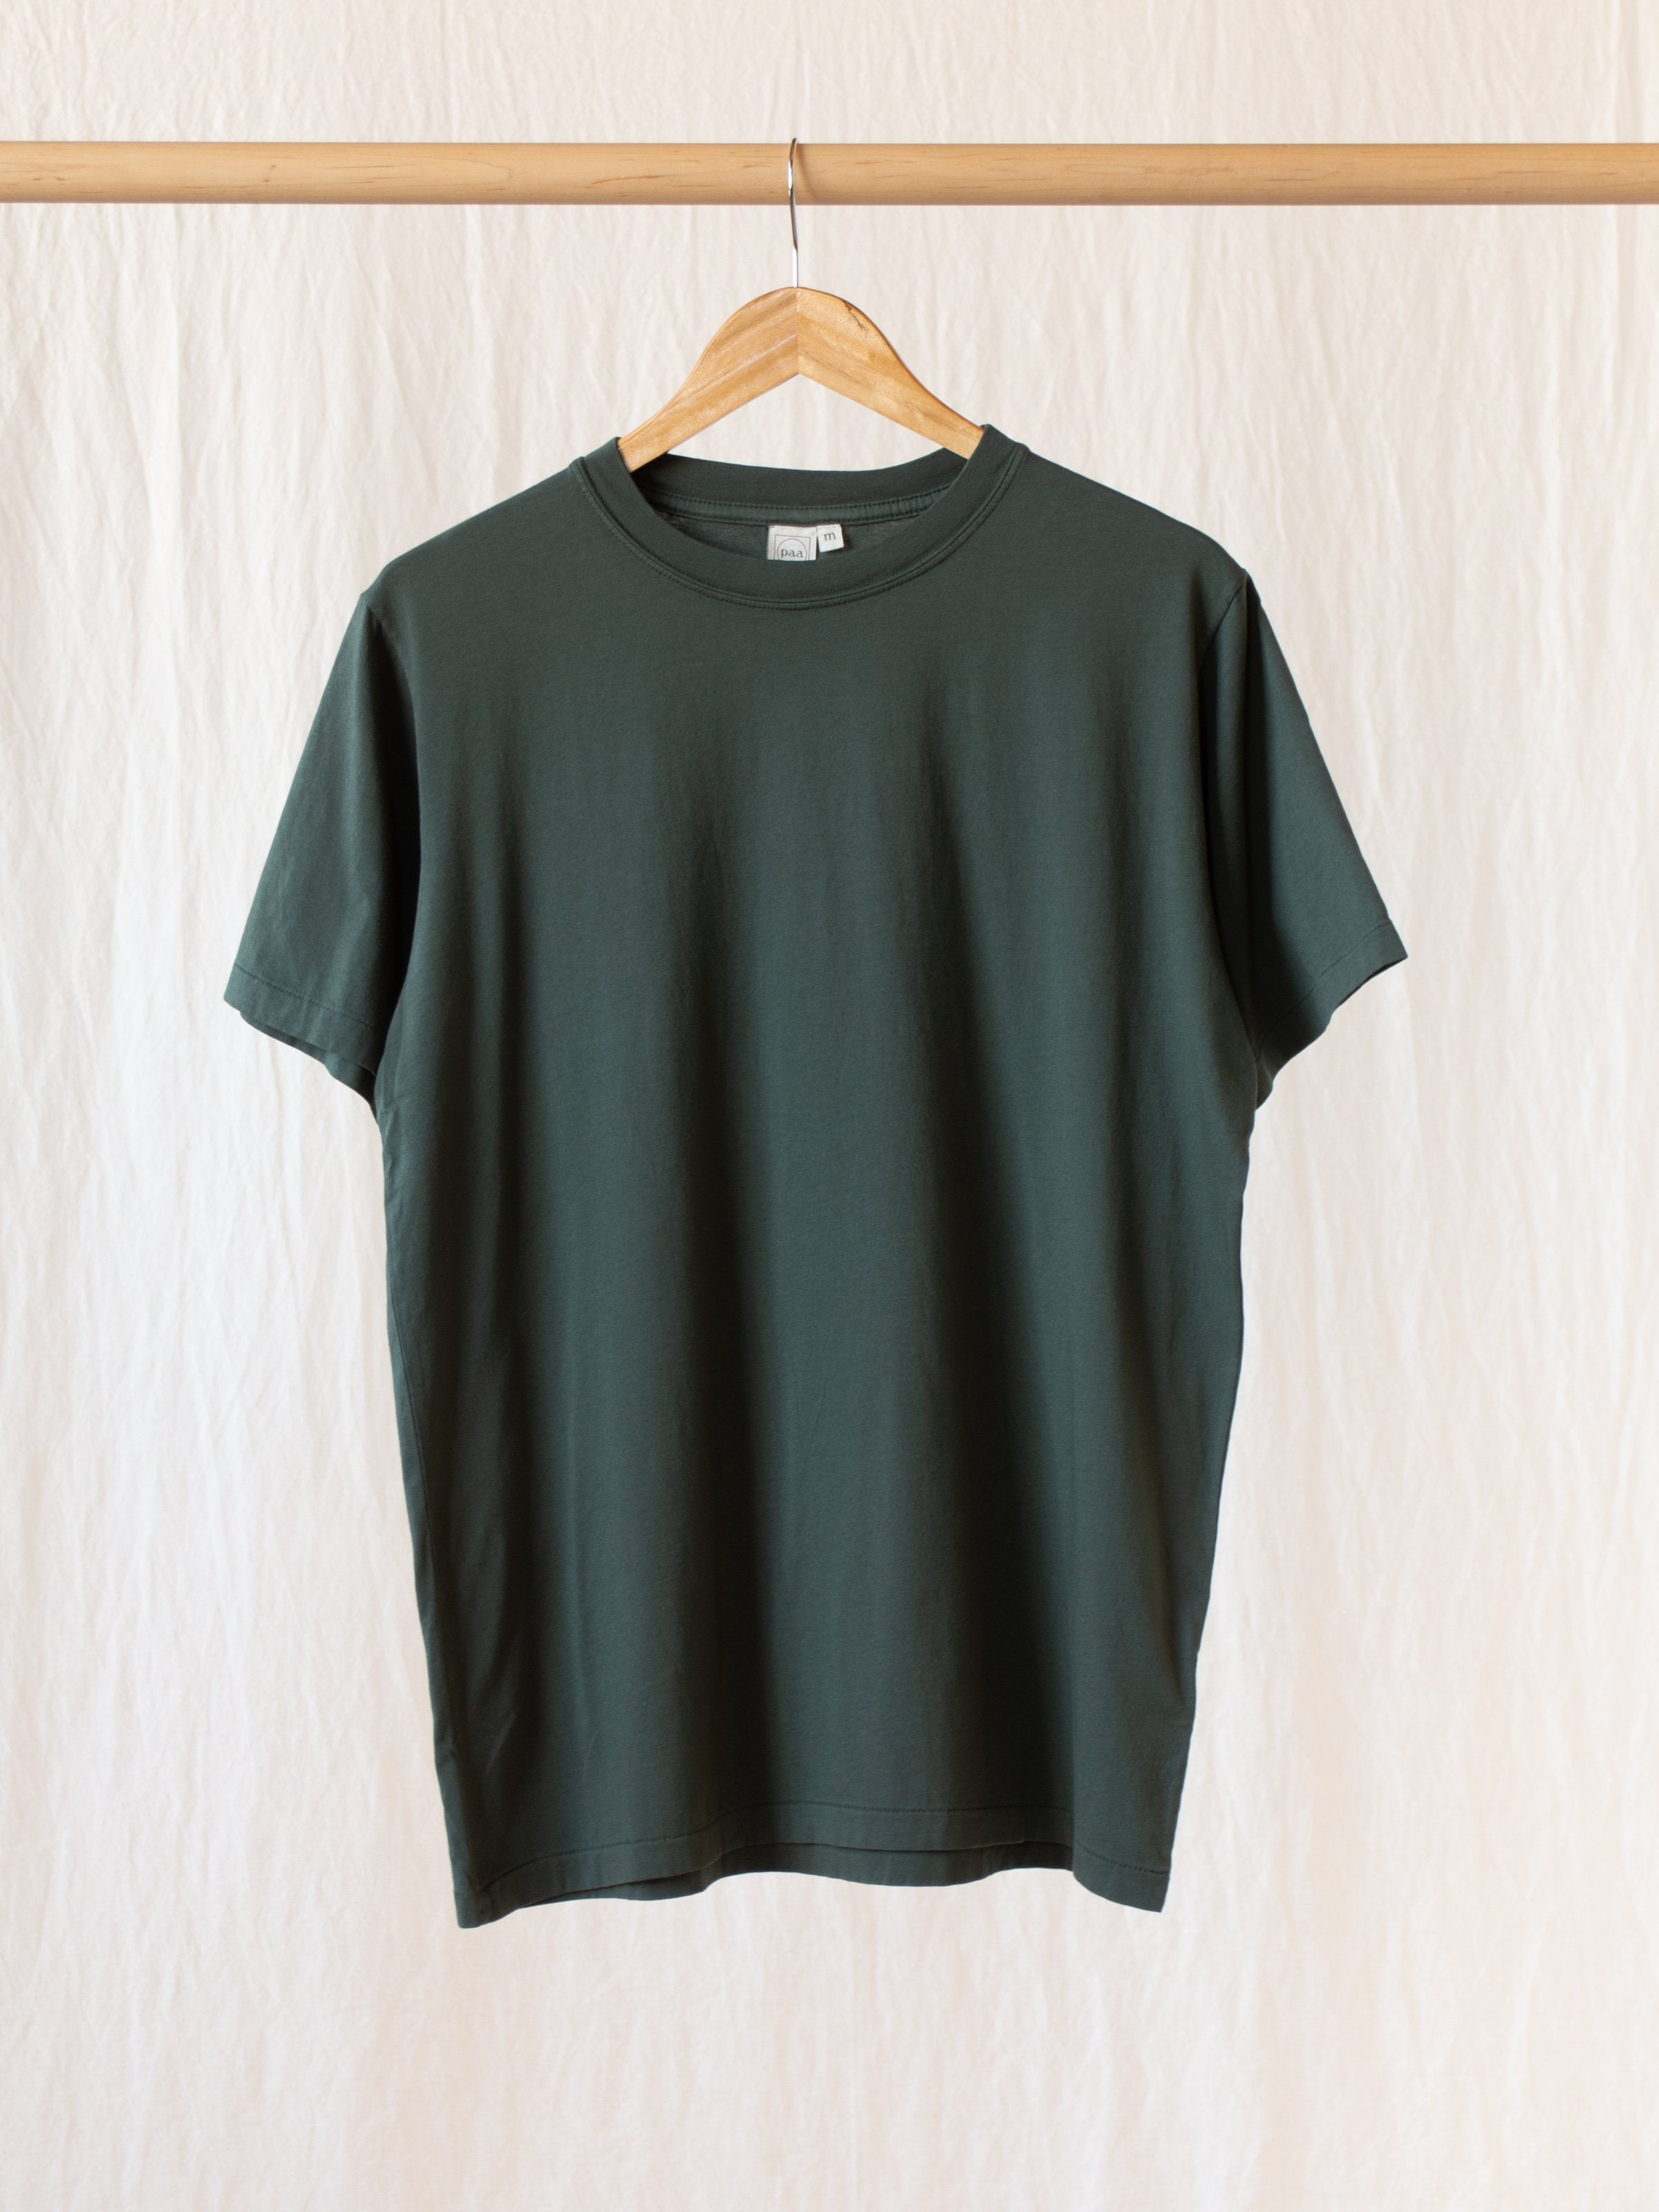 Namu Shop - paa SS Tee Two - Forest